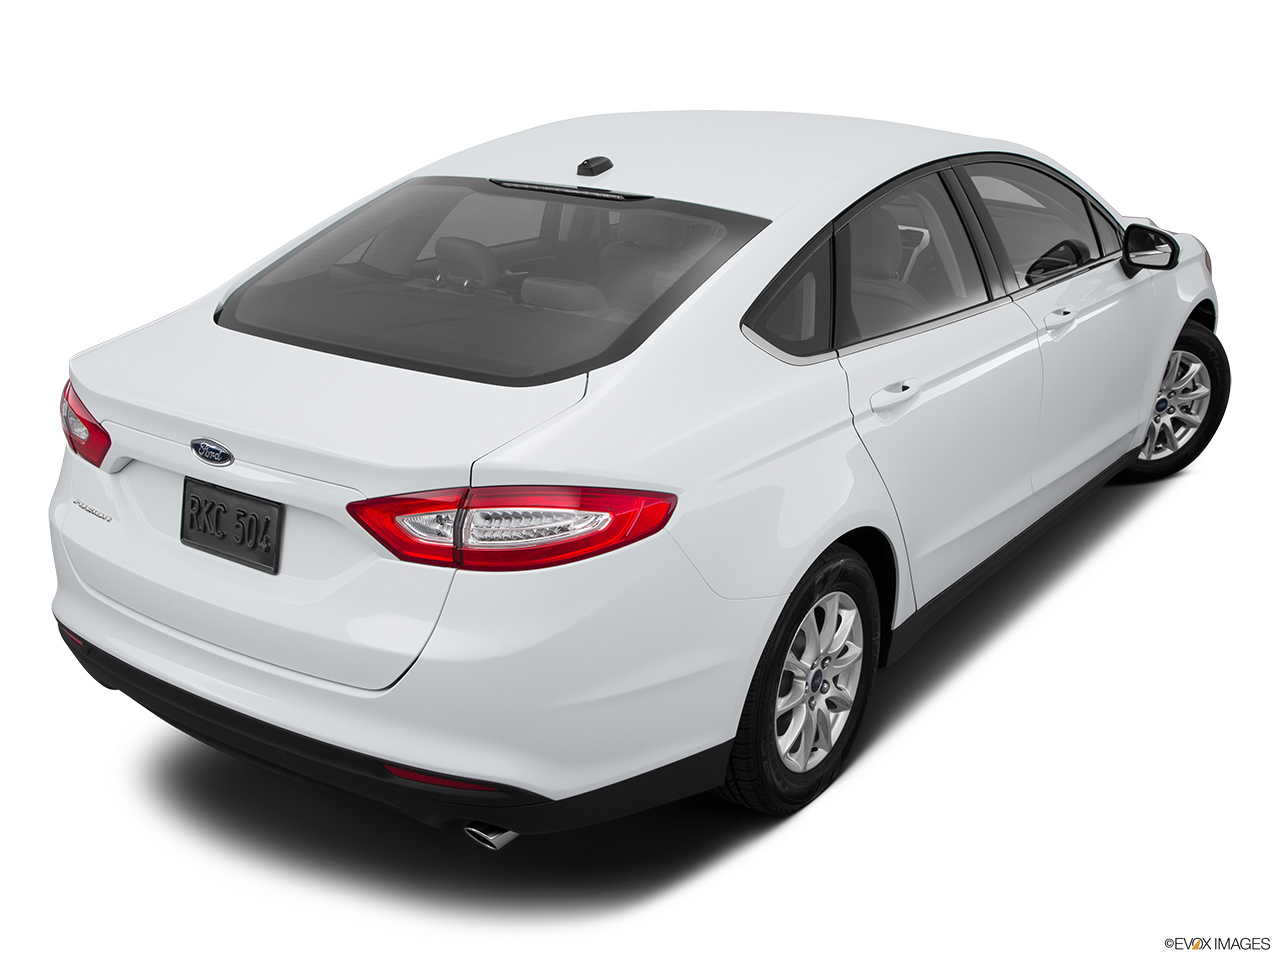 2015 Ford Fusion 4dr Sedan S Fwd Front Angle View 2015 Ford